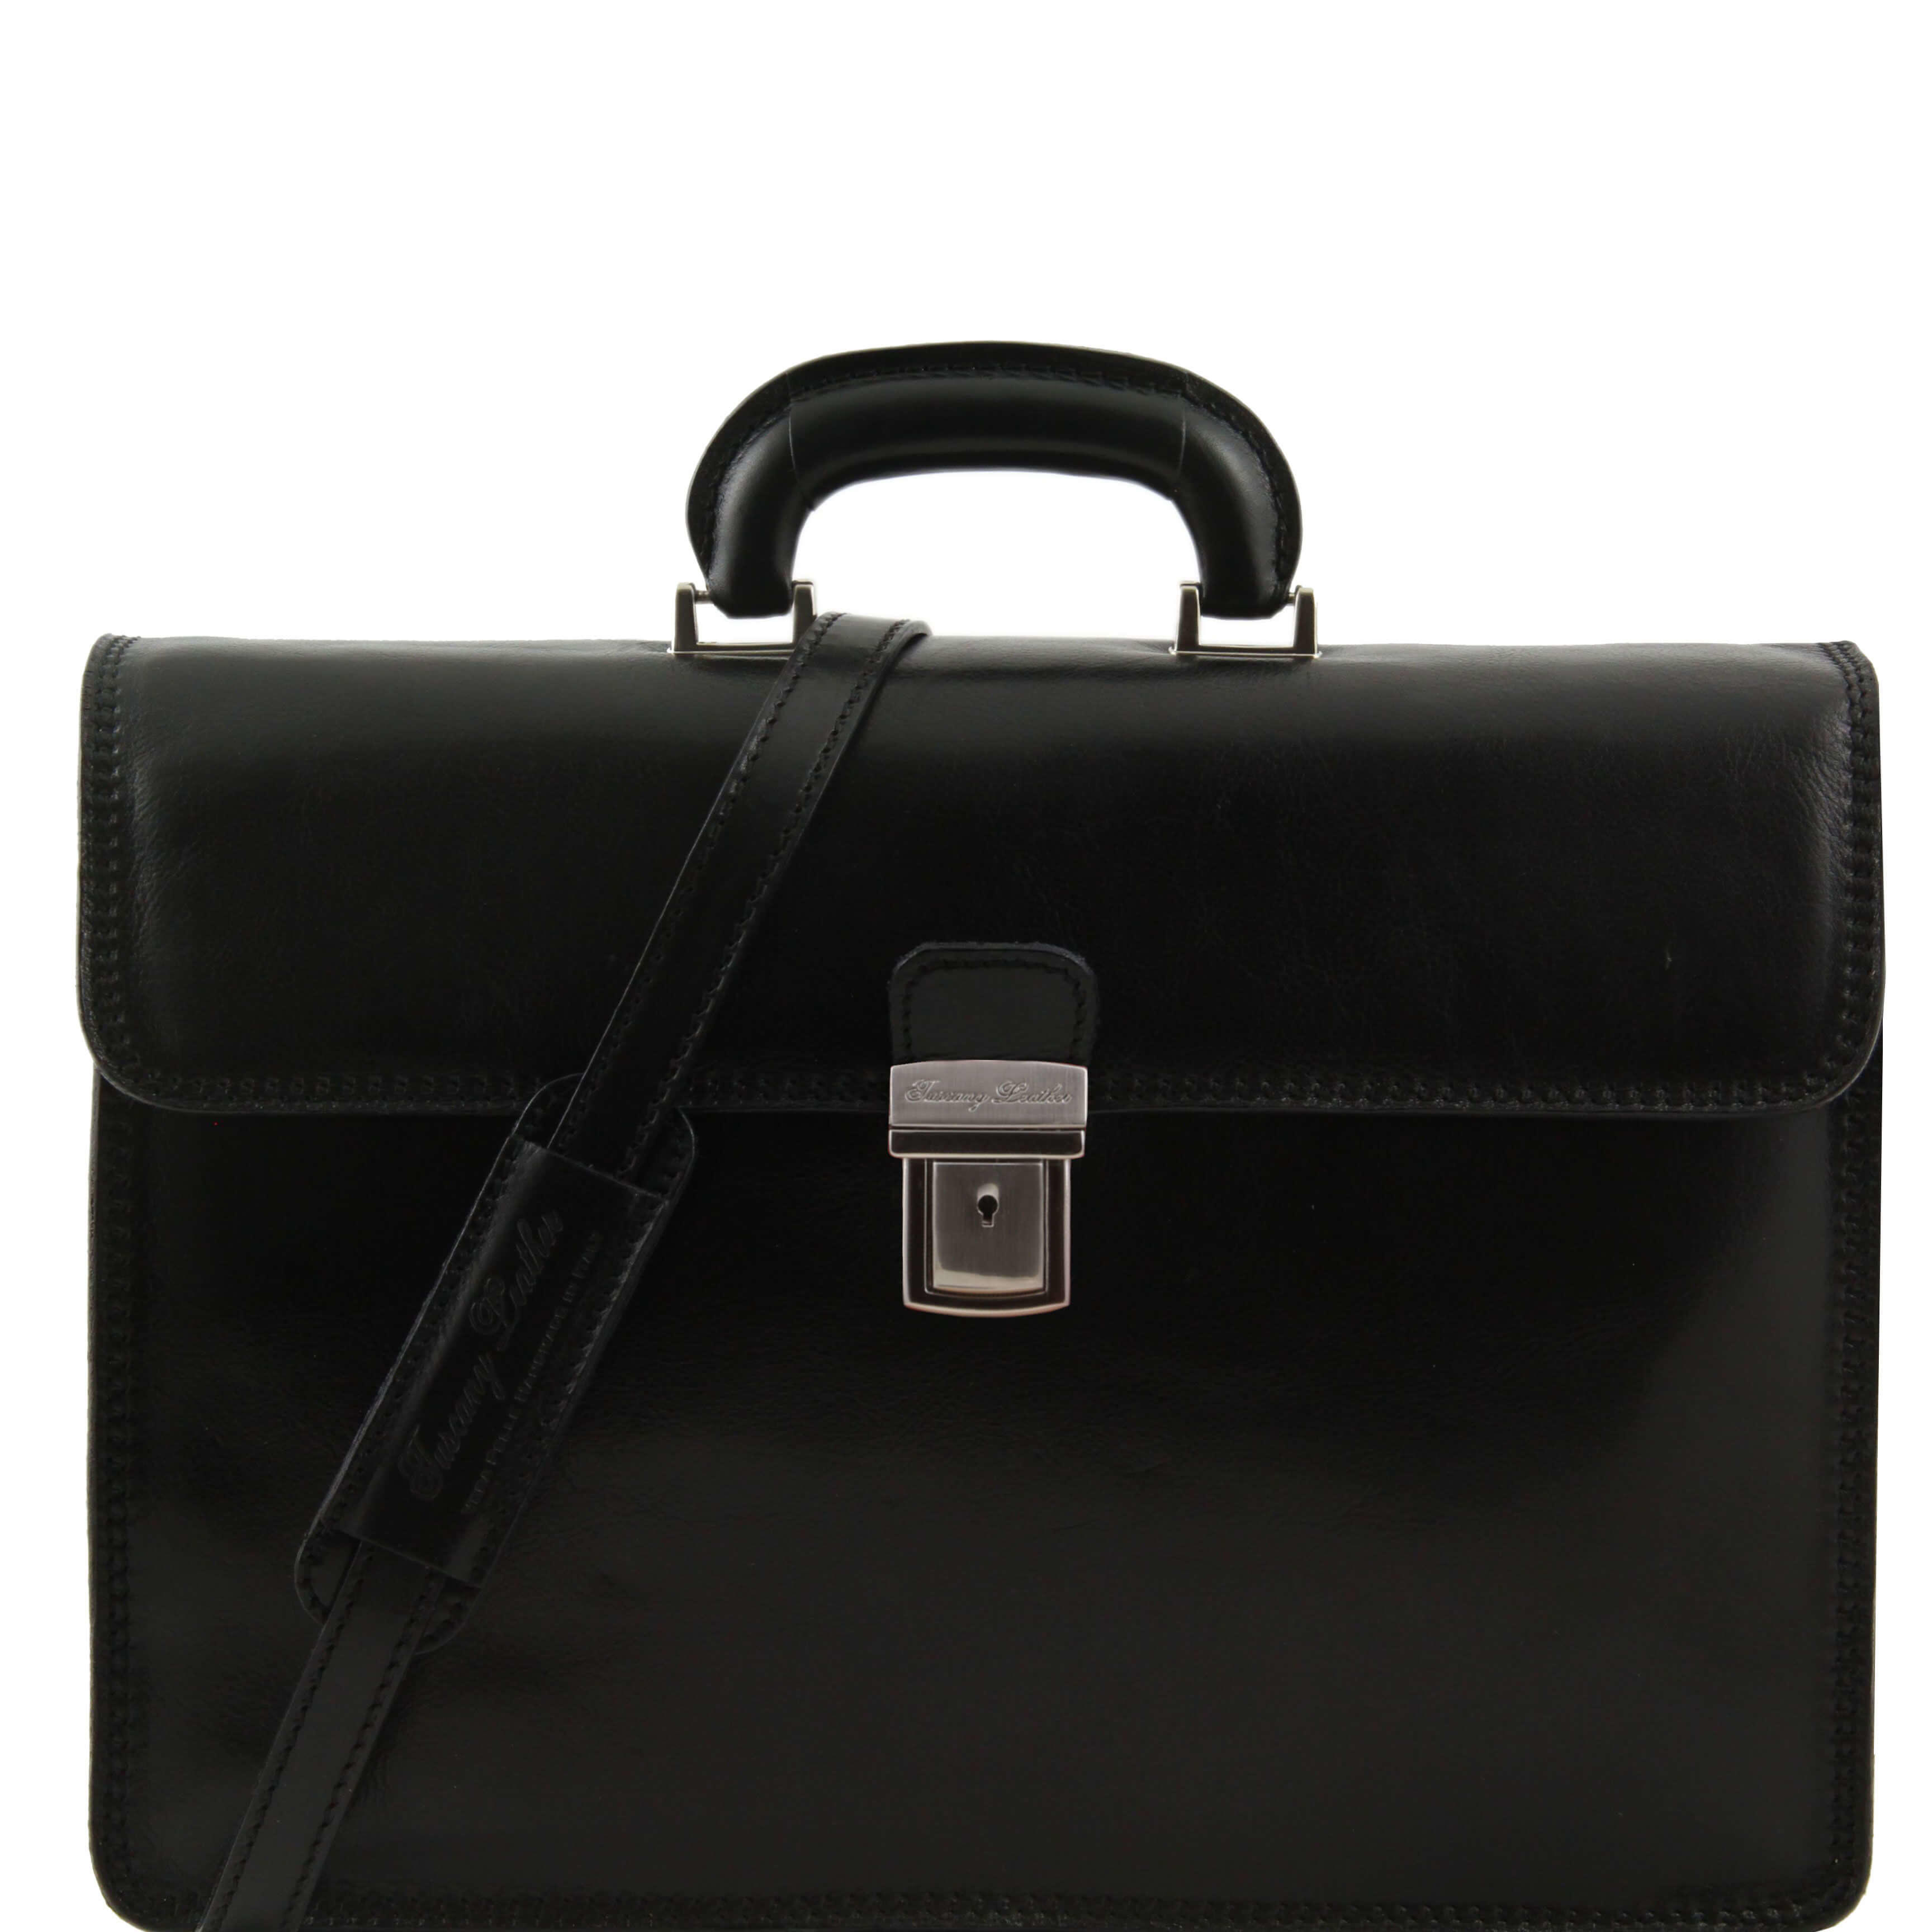 "TL10018 Parma Two Compartments Leather 15""Laptop-Briefcase-Bag & Shoulder Strap Black"